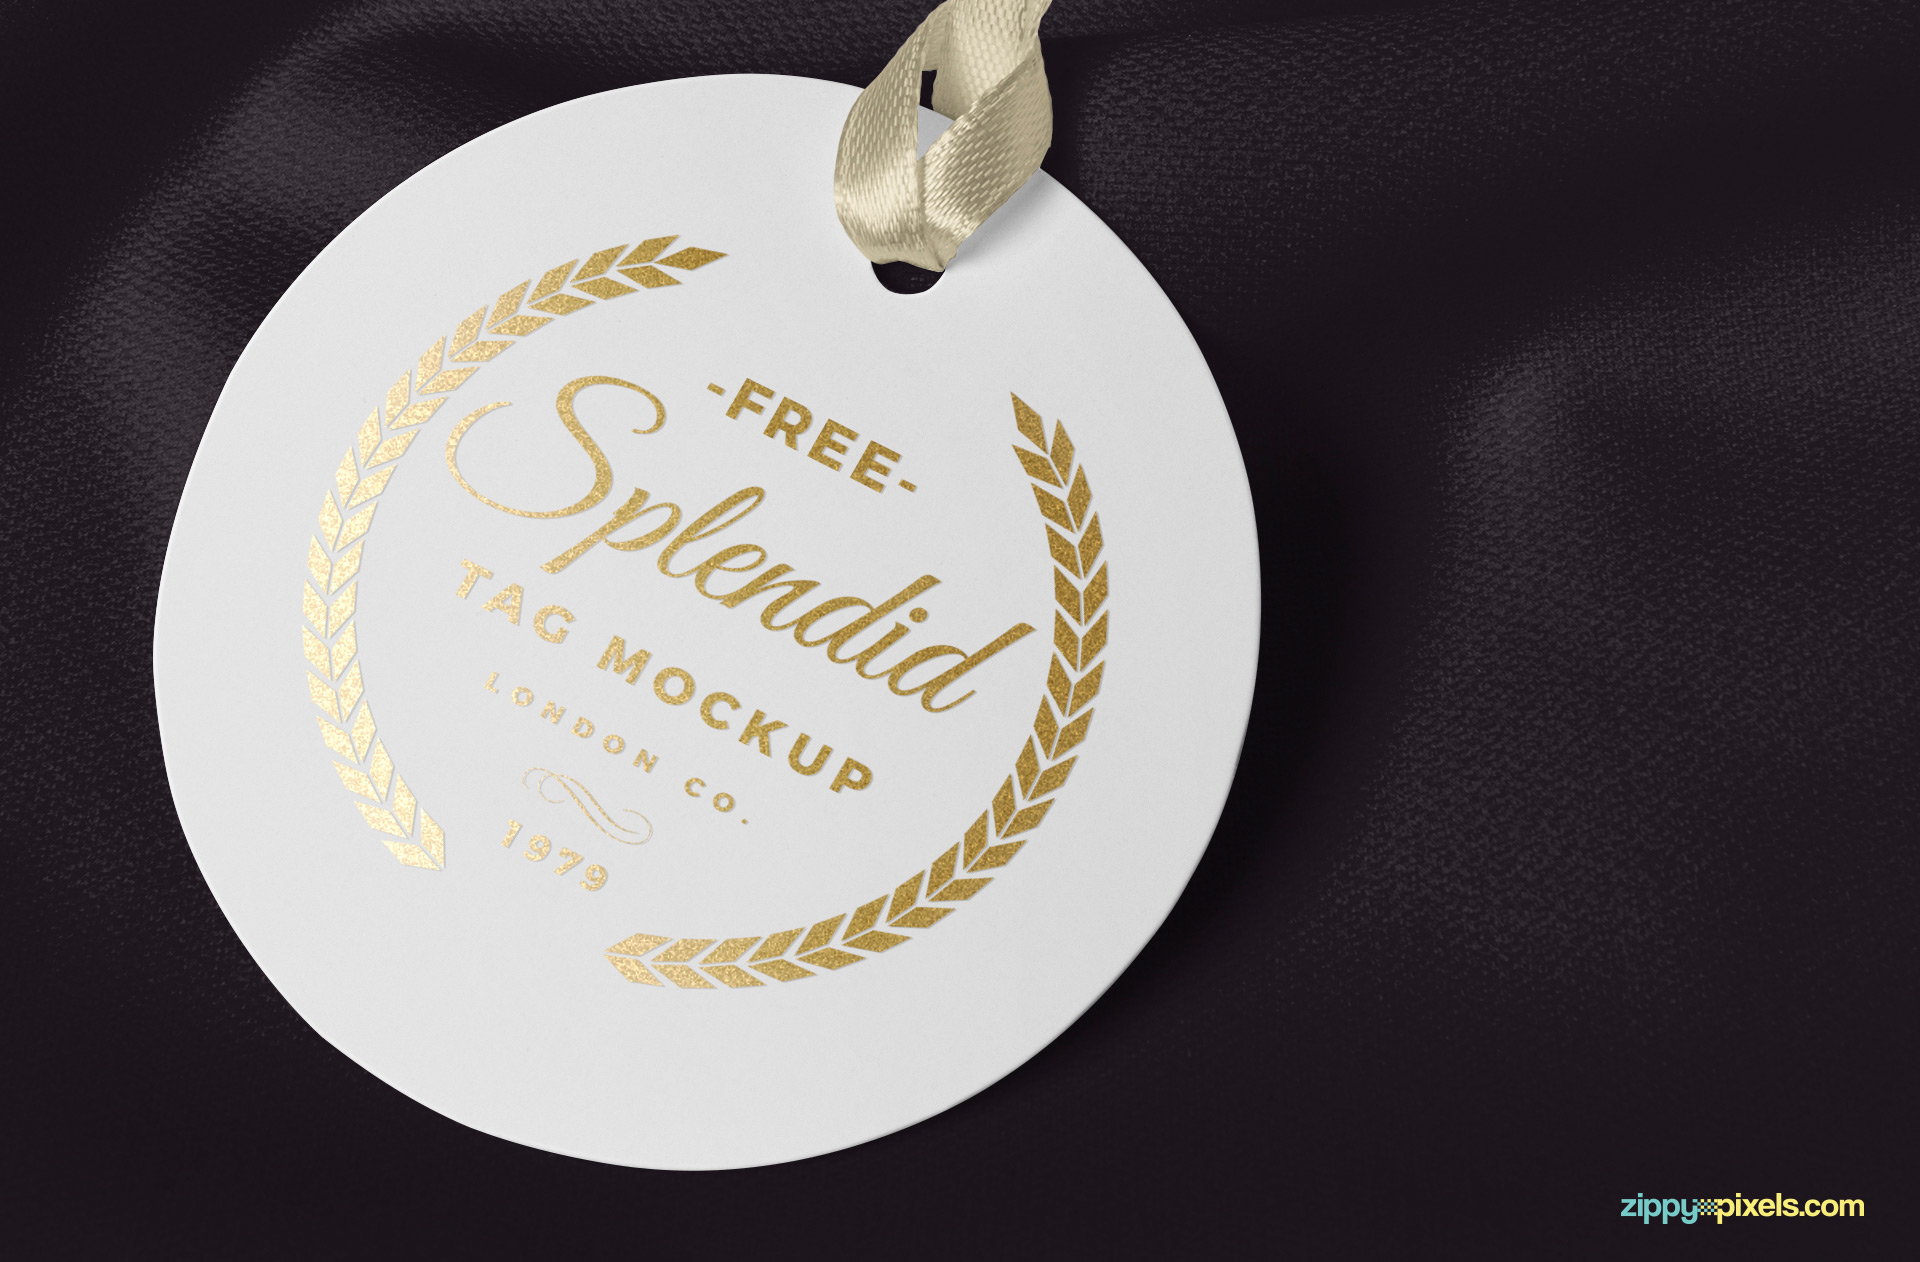 Gold foil effect of the tag mockup.